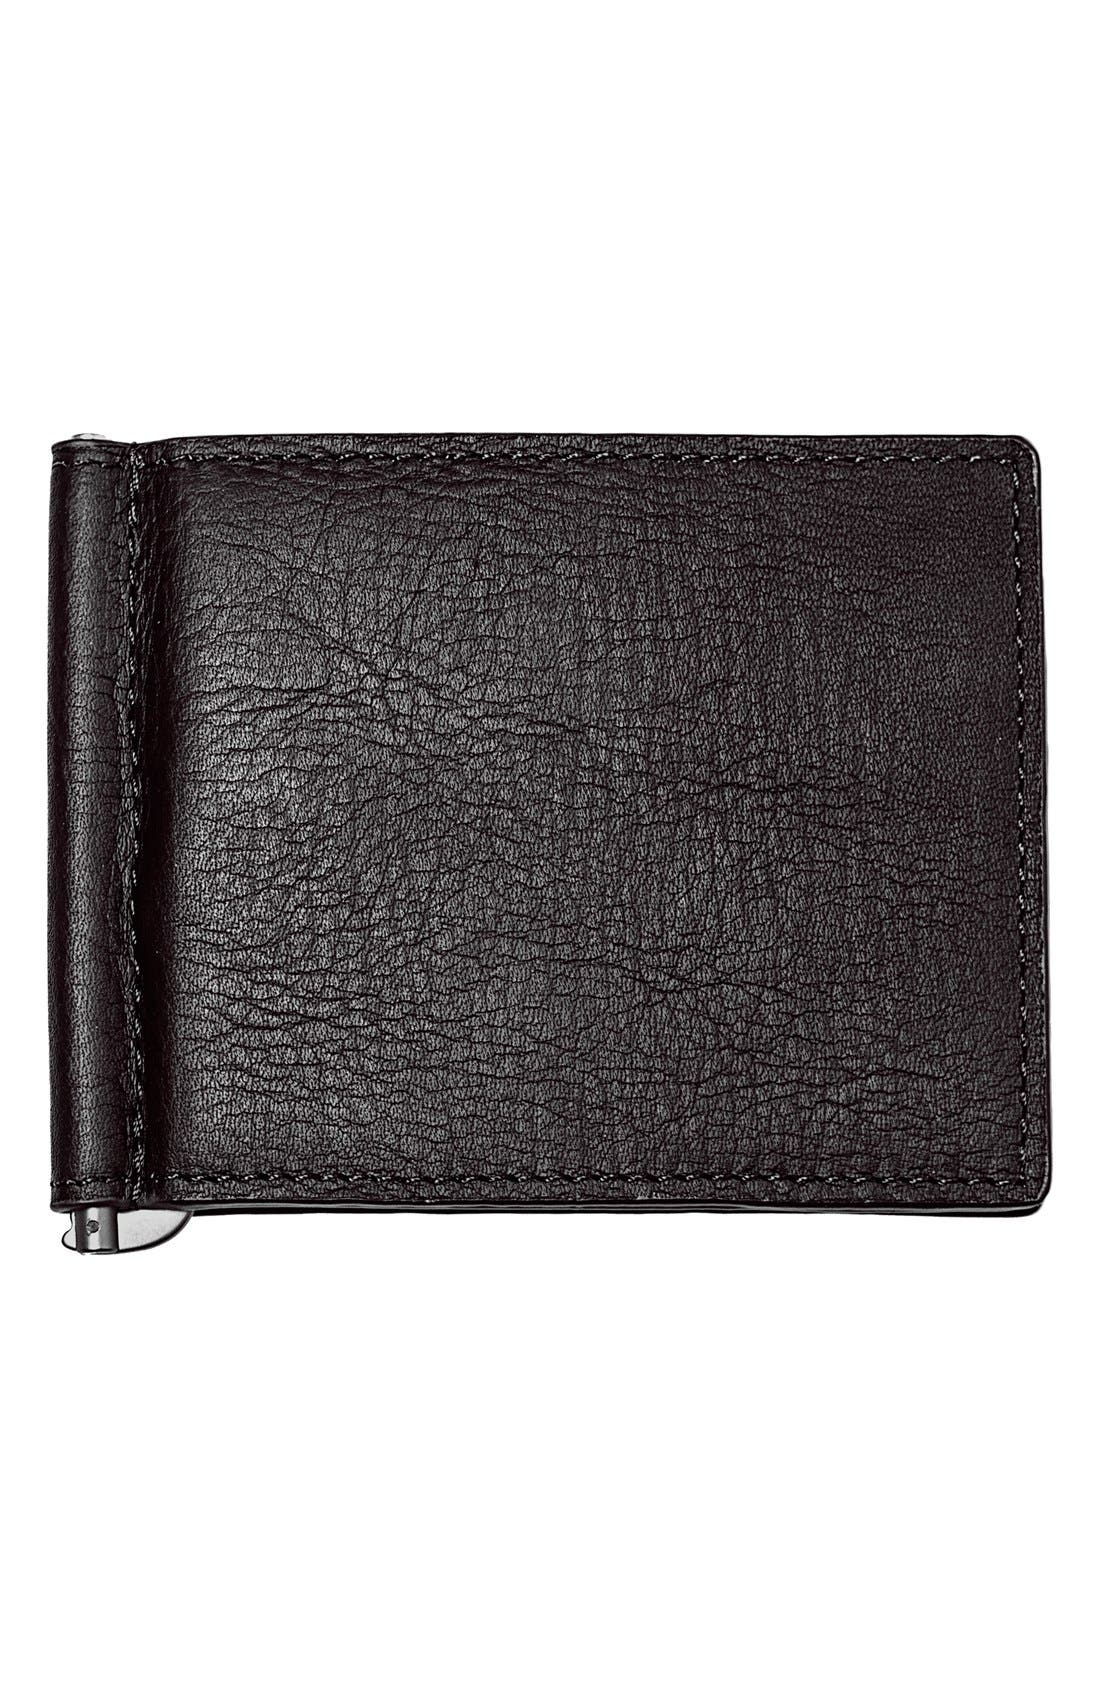 Monogram Leather Wallet & Money Clip,                         Main,                         color, BLACK - BLANK